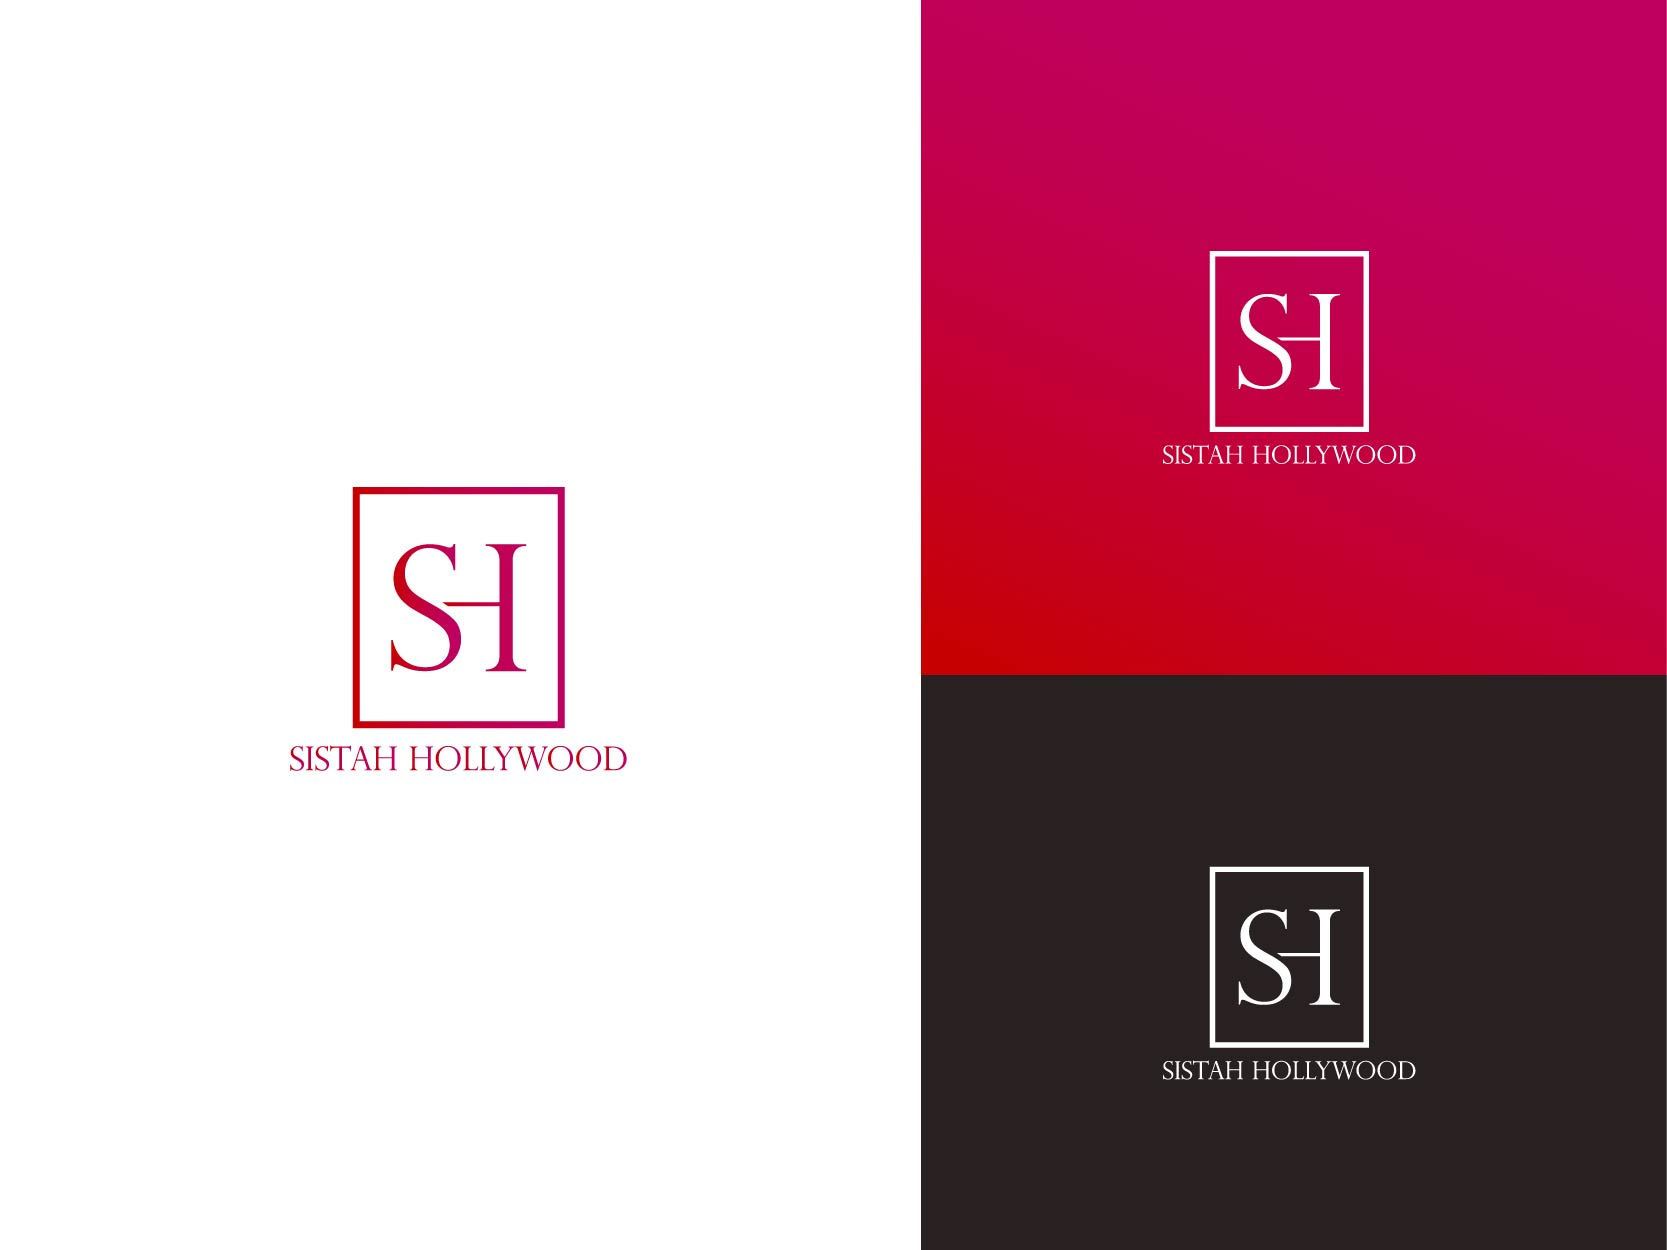 Logo Design by Osi Indra - Entry No. 10 in the Logo Design Contest New Logo Design for Sistah Hollywood.